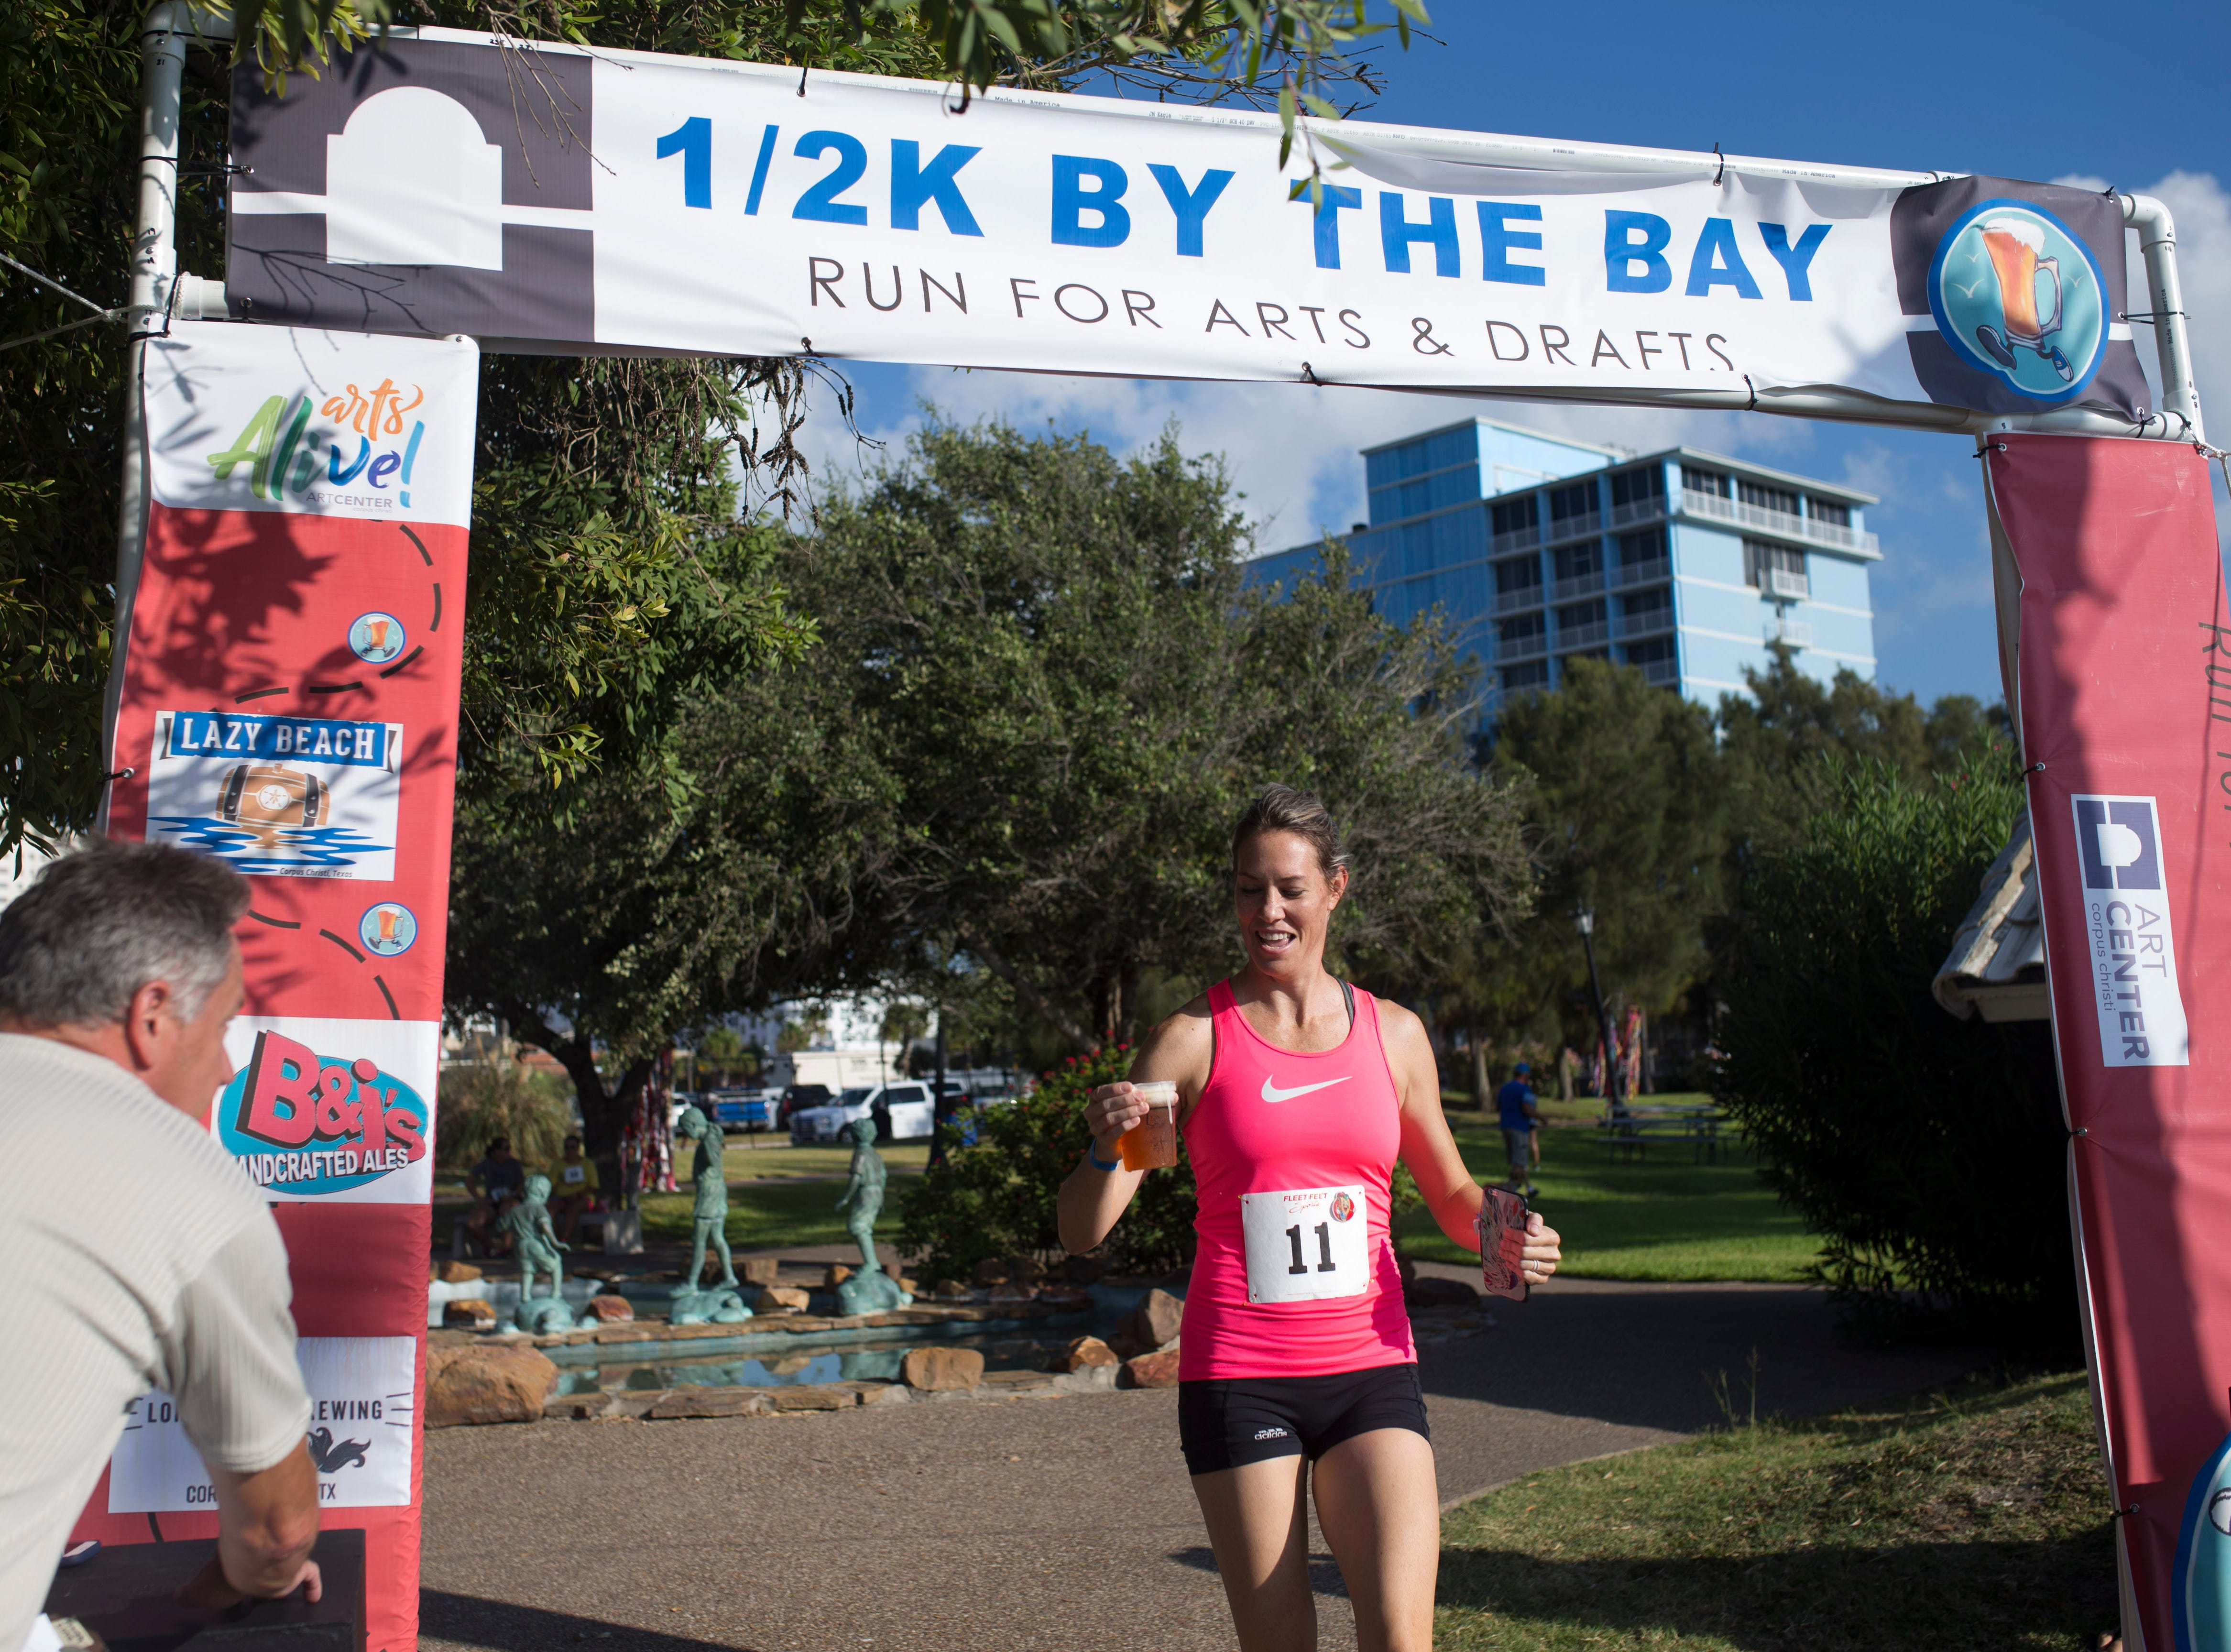 Ashley Pettus finish first in her heat for the 1/2 K By the Bay Beer Run's  during the annual Arts Alive Festival at the Art Center of Corpus Christi on Saturday, Sep. 1, 2018.